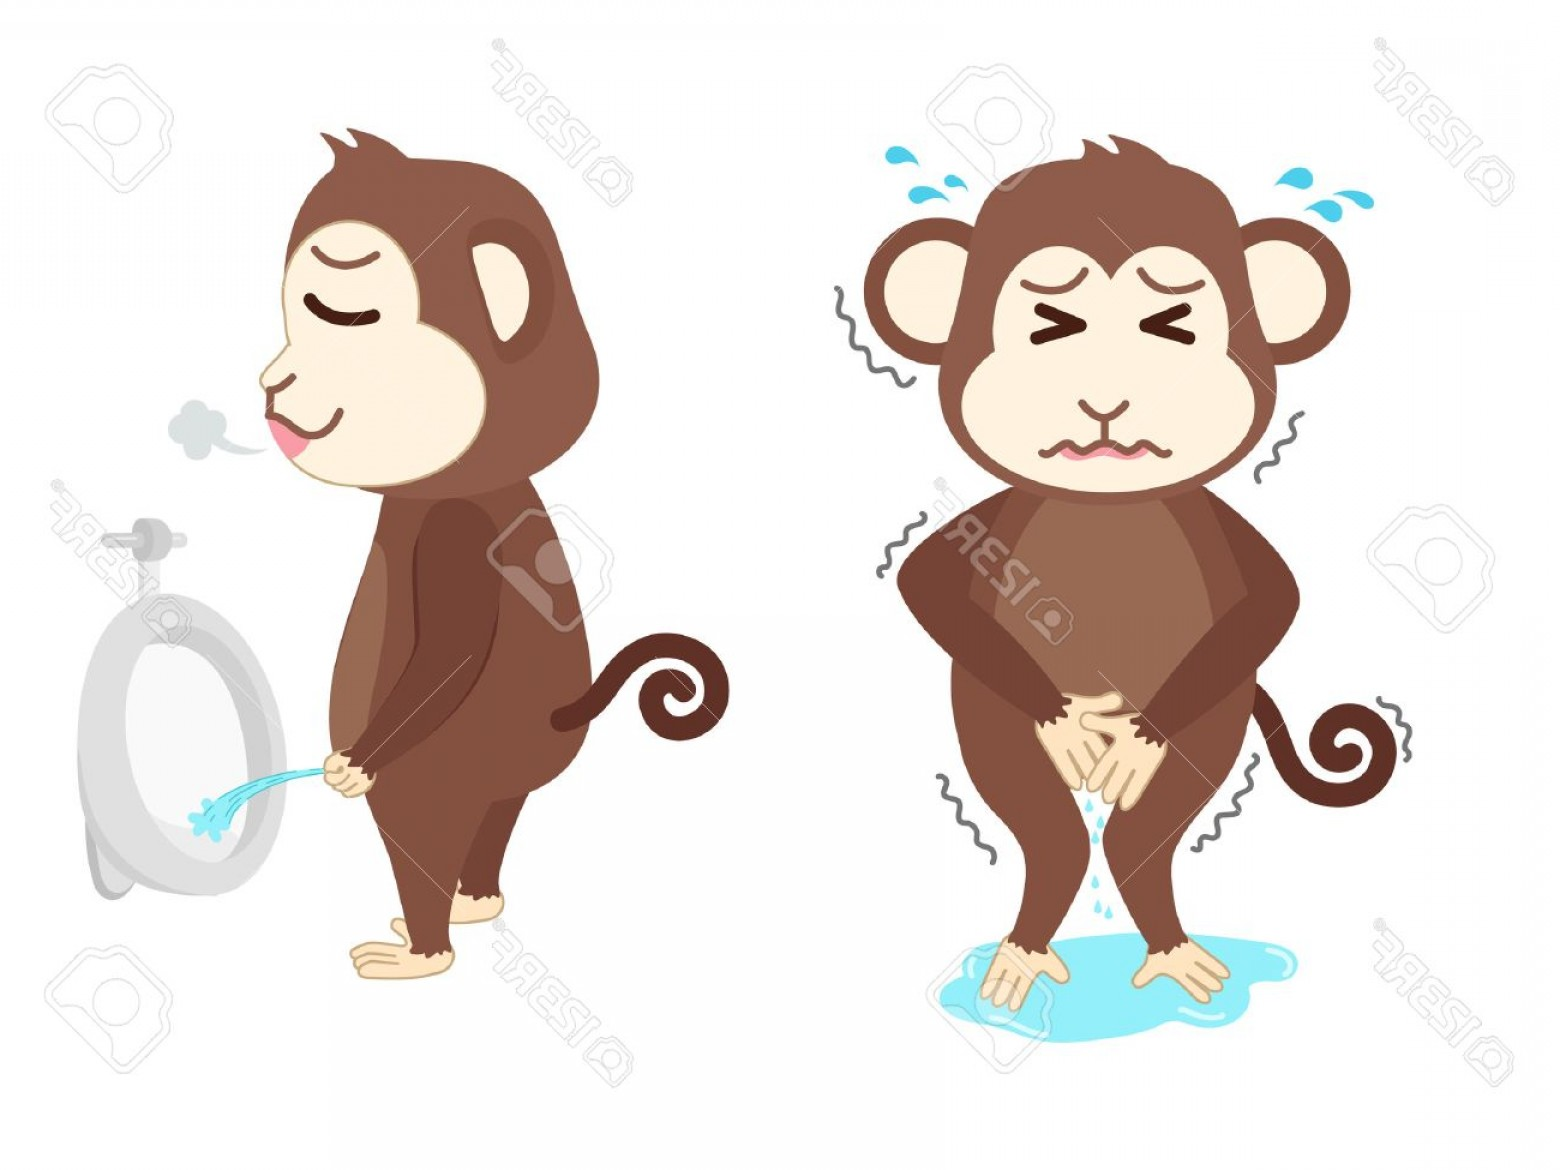 Pee On Clip Art Vector Graphic: Photostock Vector Monkey Need A Pee And Standing Peeing